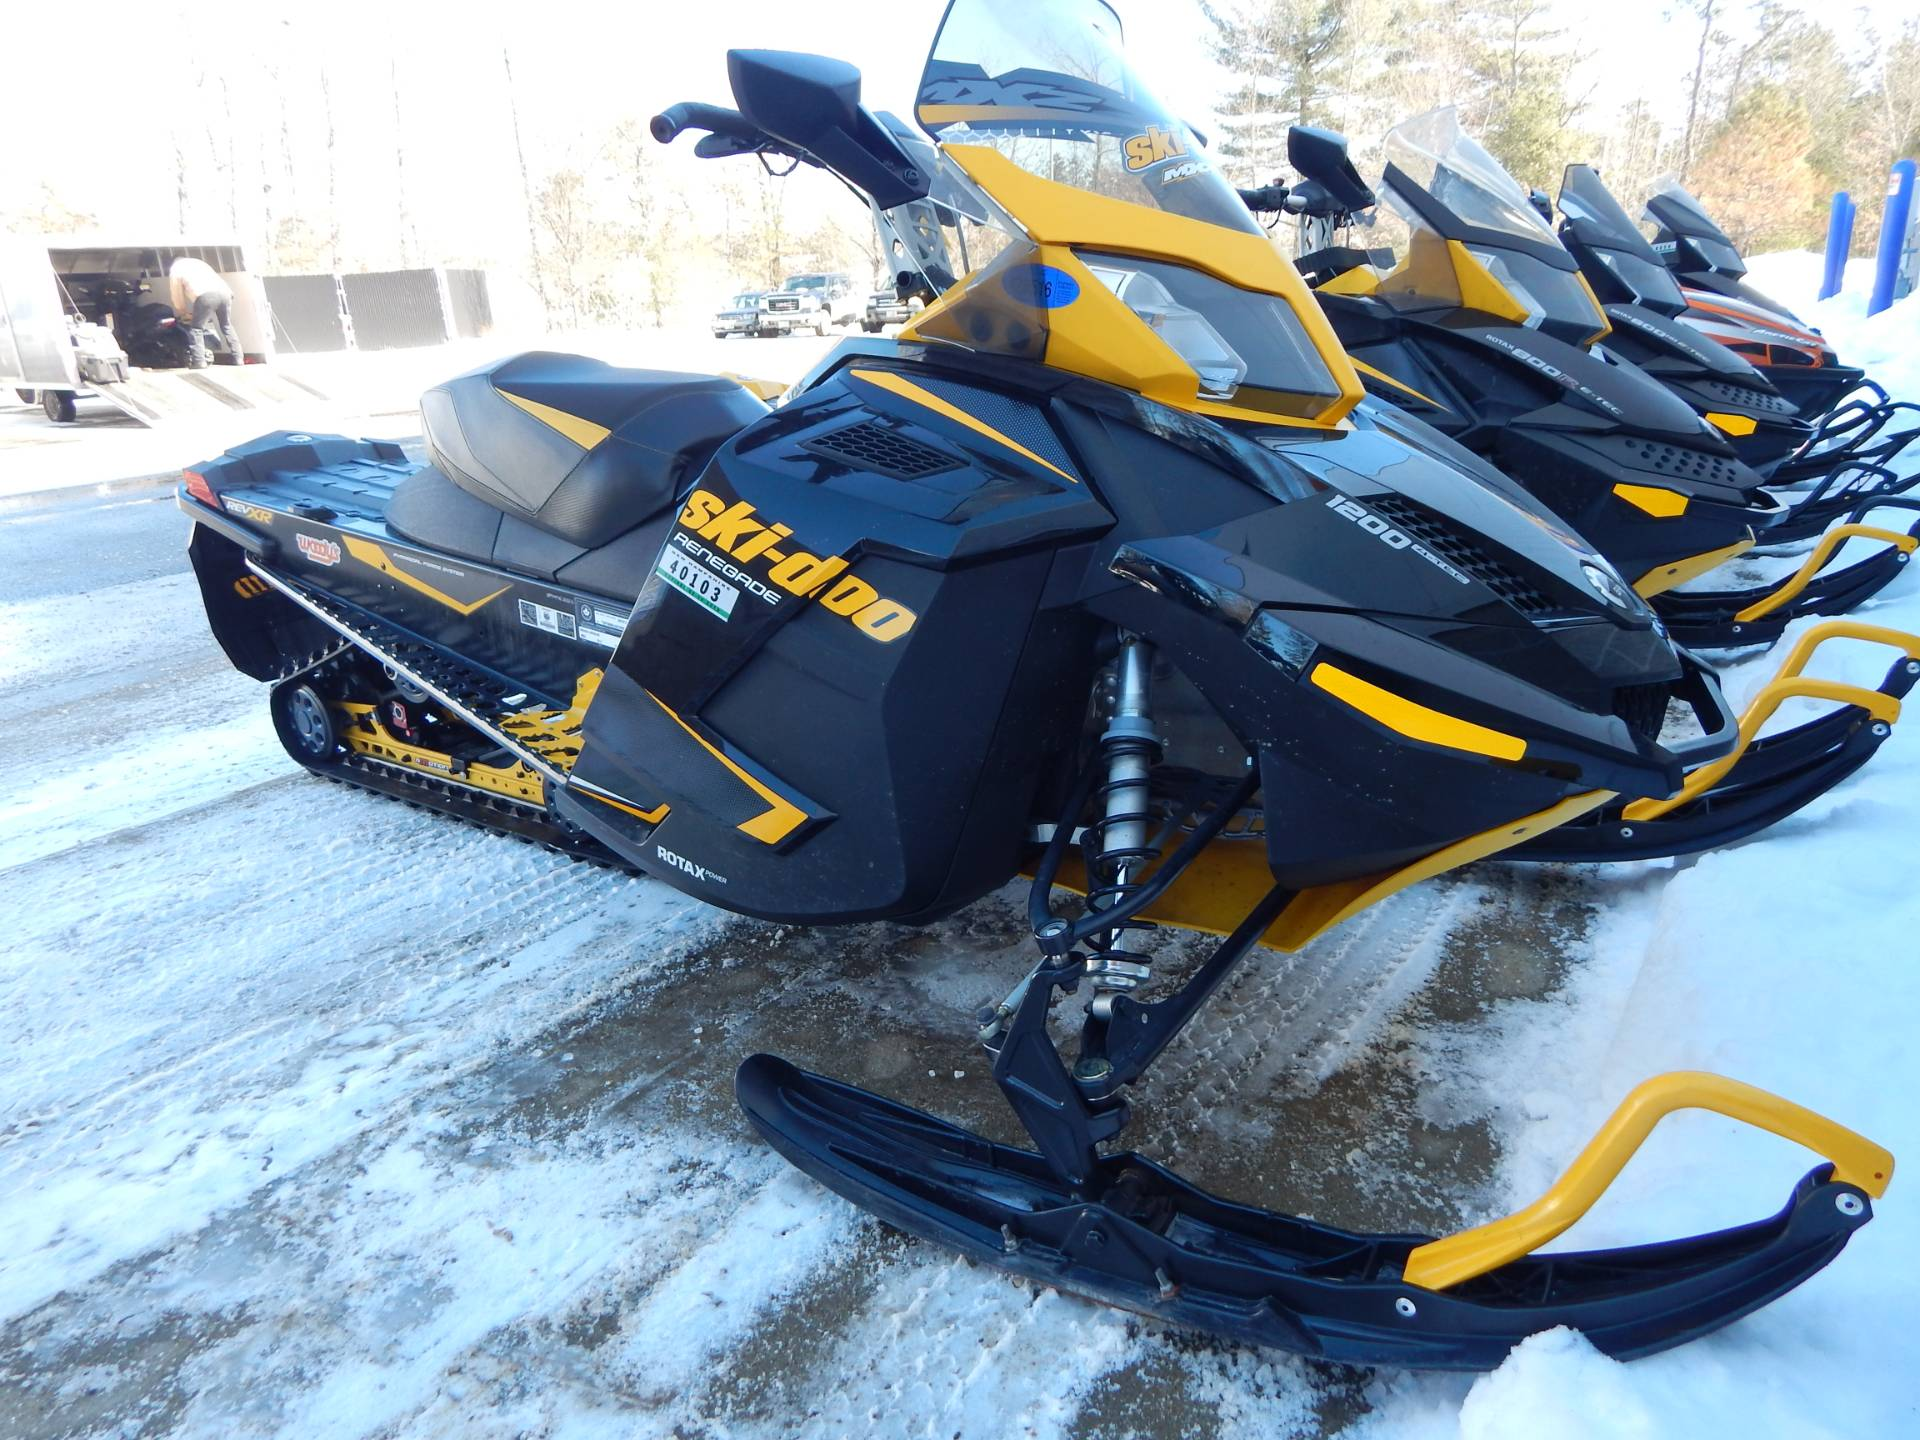 2014 Ski-Doo Renegade® X® 4-TEC® 1200 in Concord, New Hampshire - Photo 1